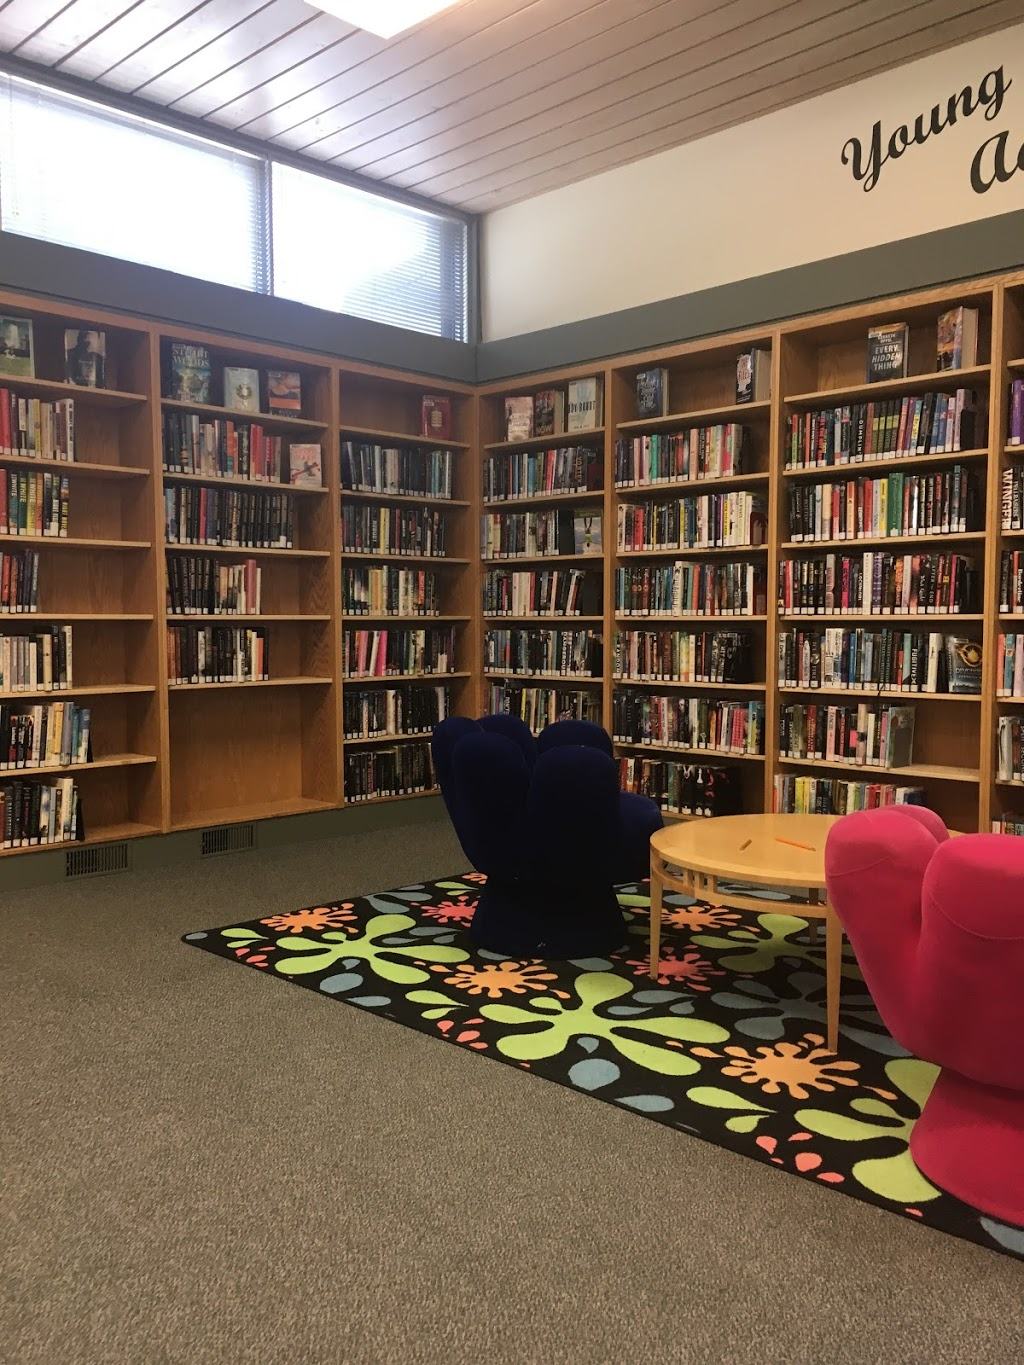 Southeast Regional Library | library | 49 Bison Ave, Weyburn, SK S4H 0H9, Canada | 3068483100 OR +1 306-848-3100